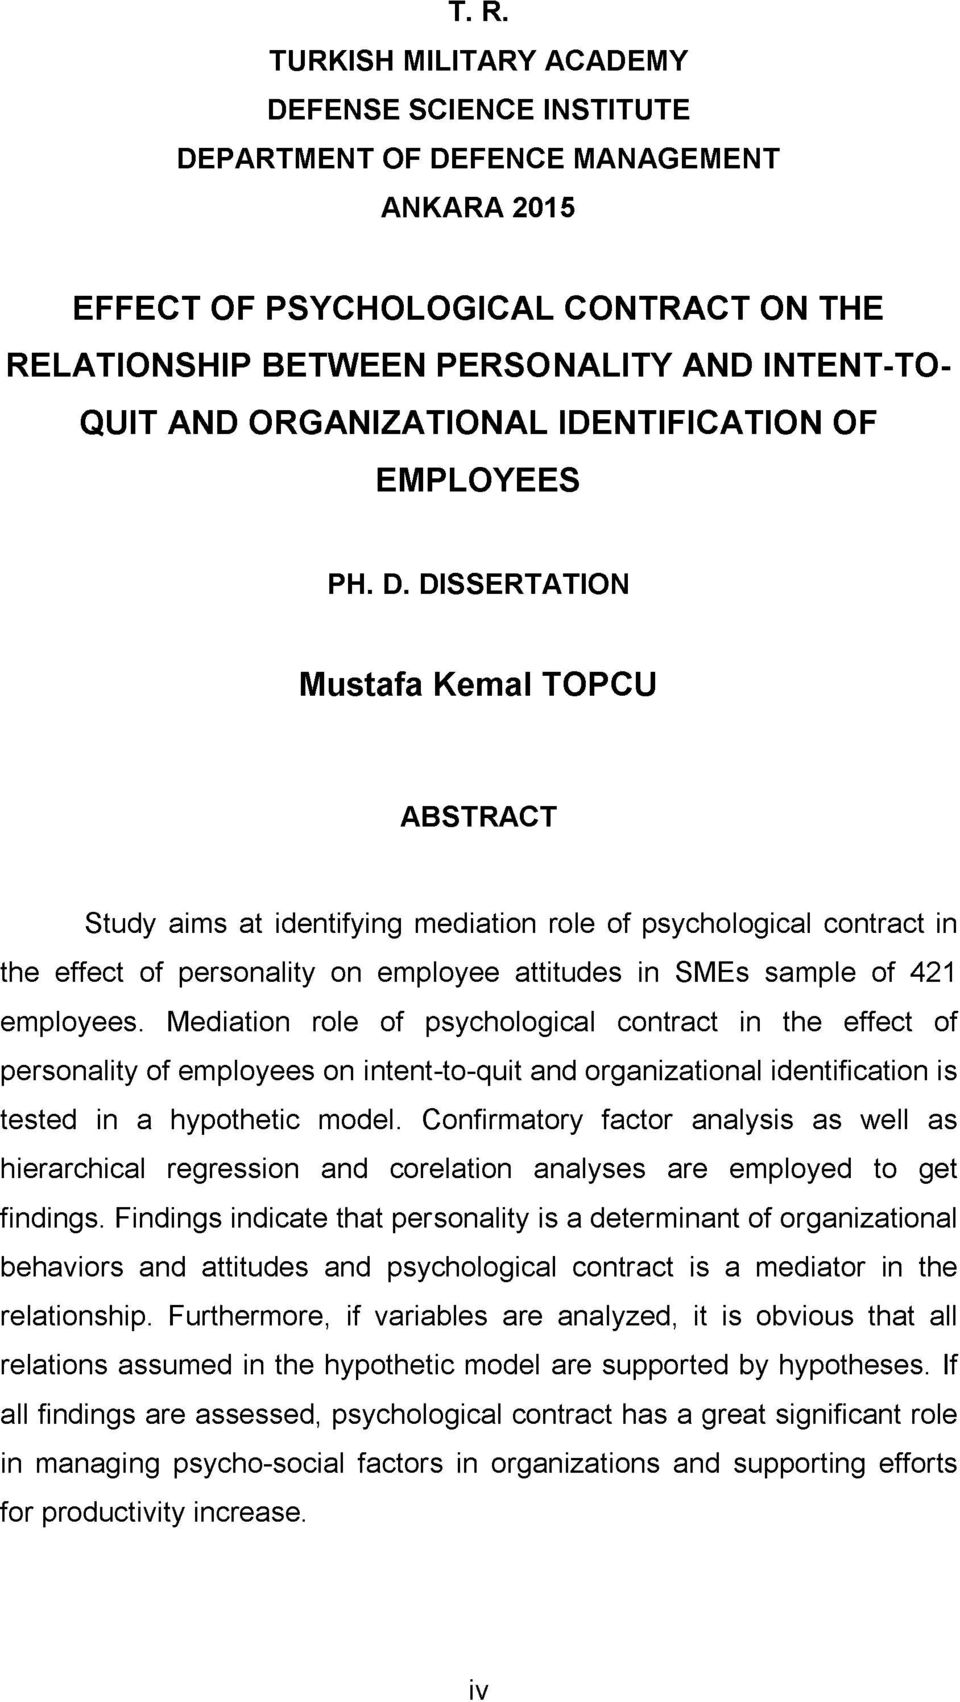 DISSERTATION Mustafa Kemal TOPCU ABSTRACT Study aims at identifying mediation role of psychological contract in the effect of personality on employee attitudes in SMEs sample of 421 employees.